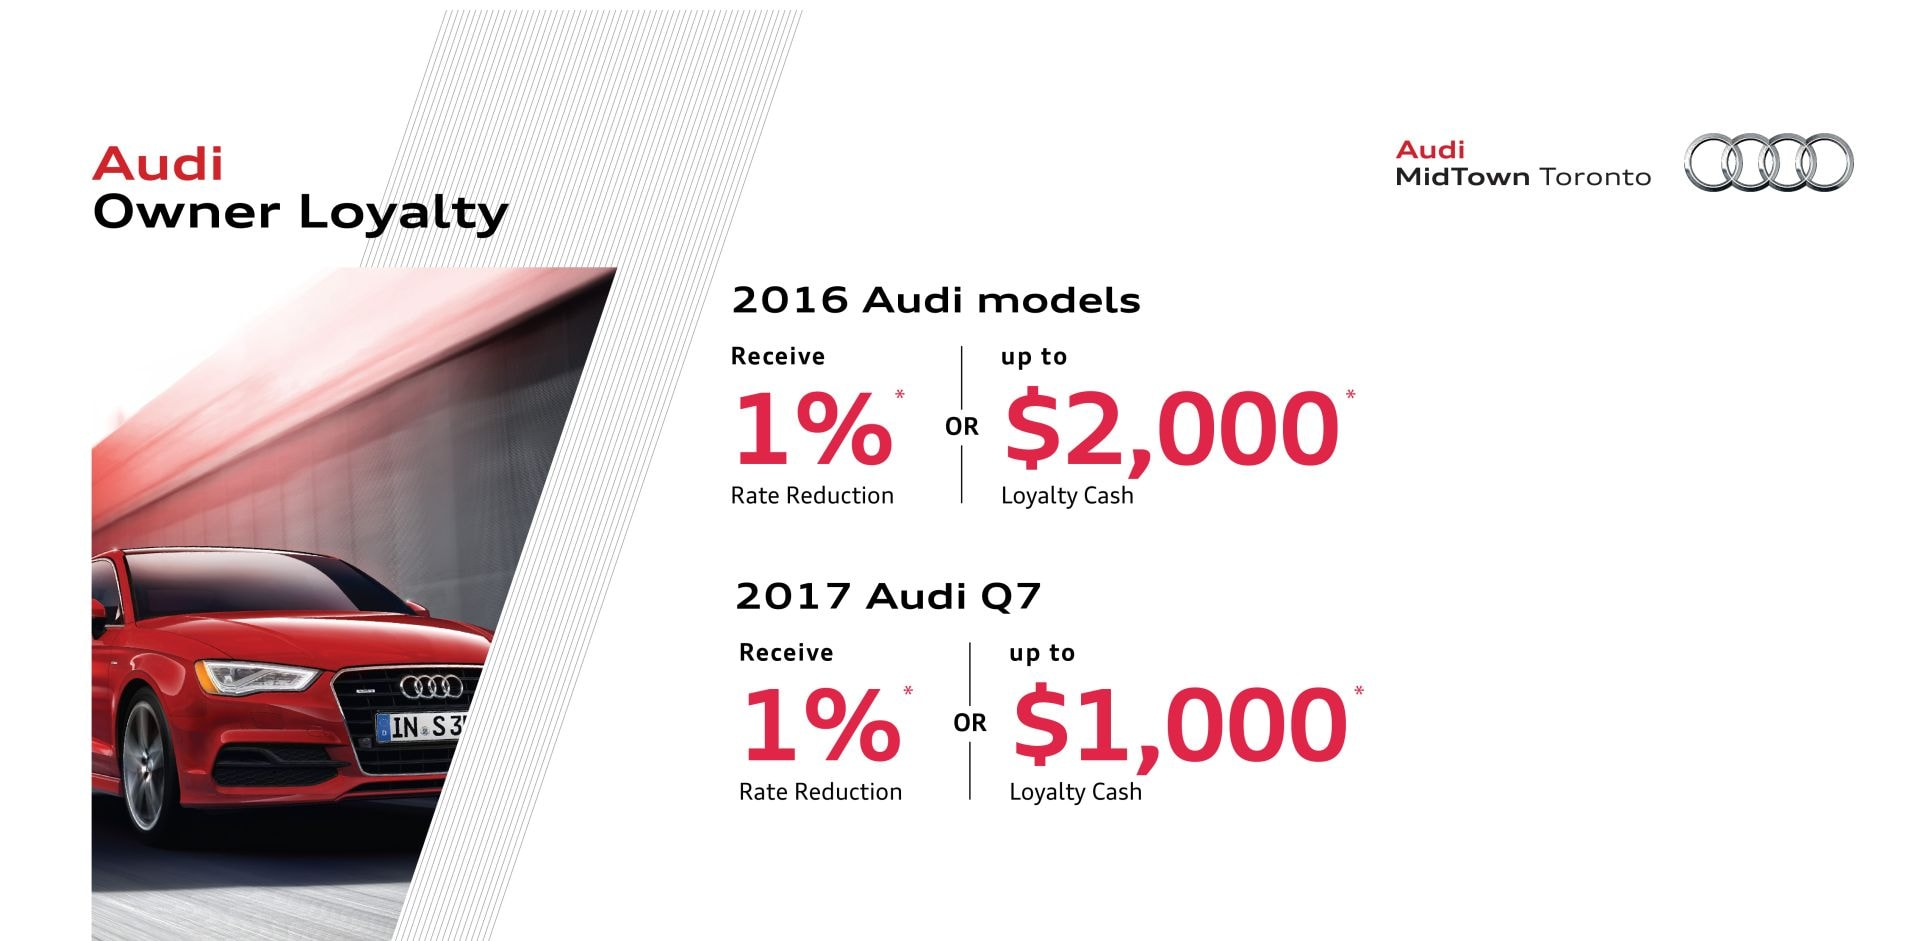 Audi Midtown Toronto Vehicles For Sale In Toronto ON MJ R - Audi loyalty